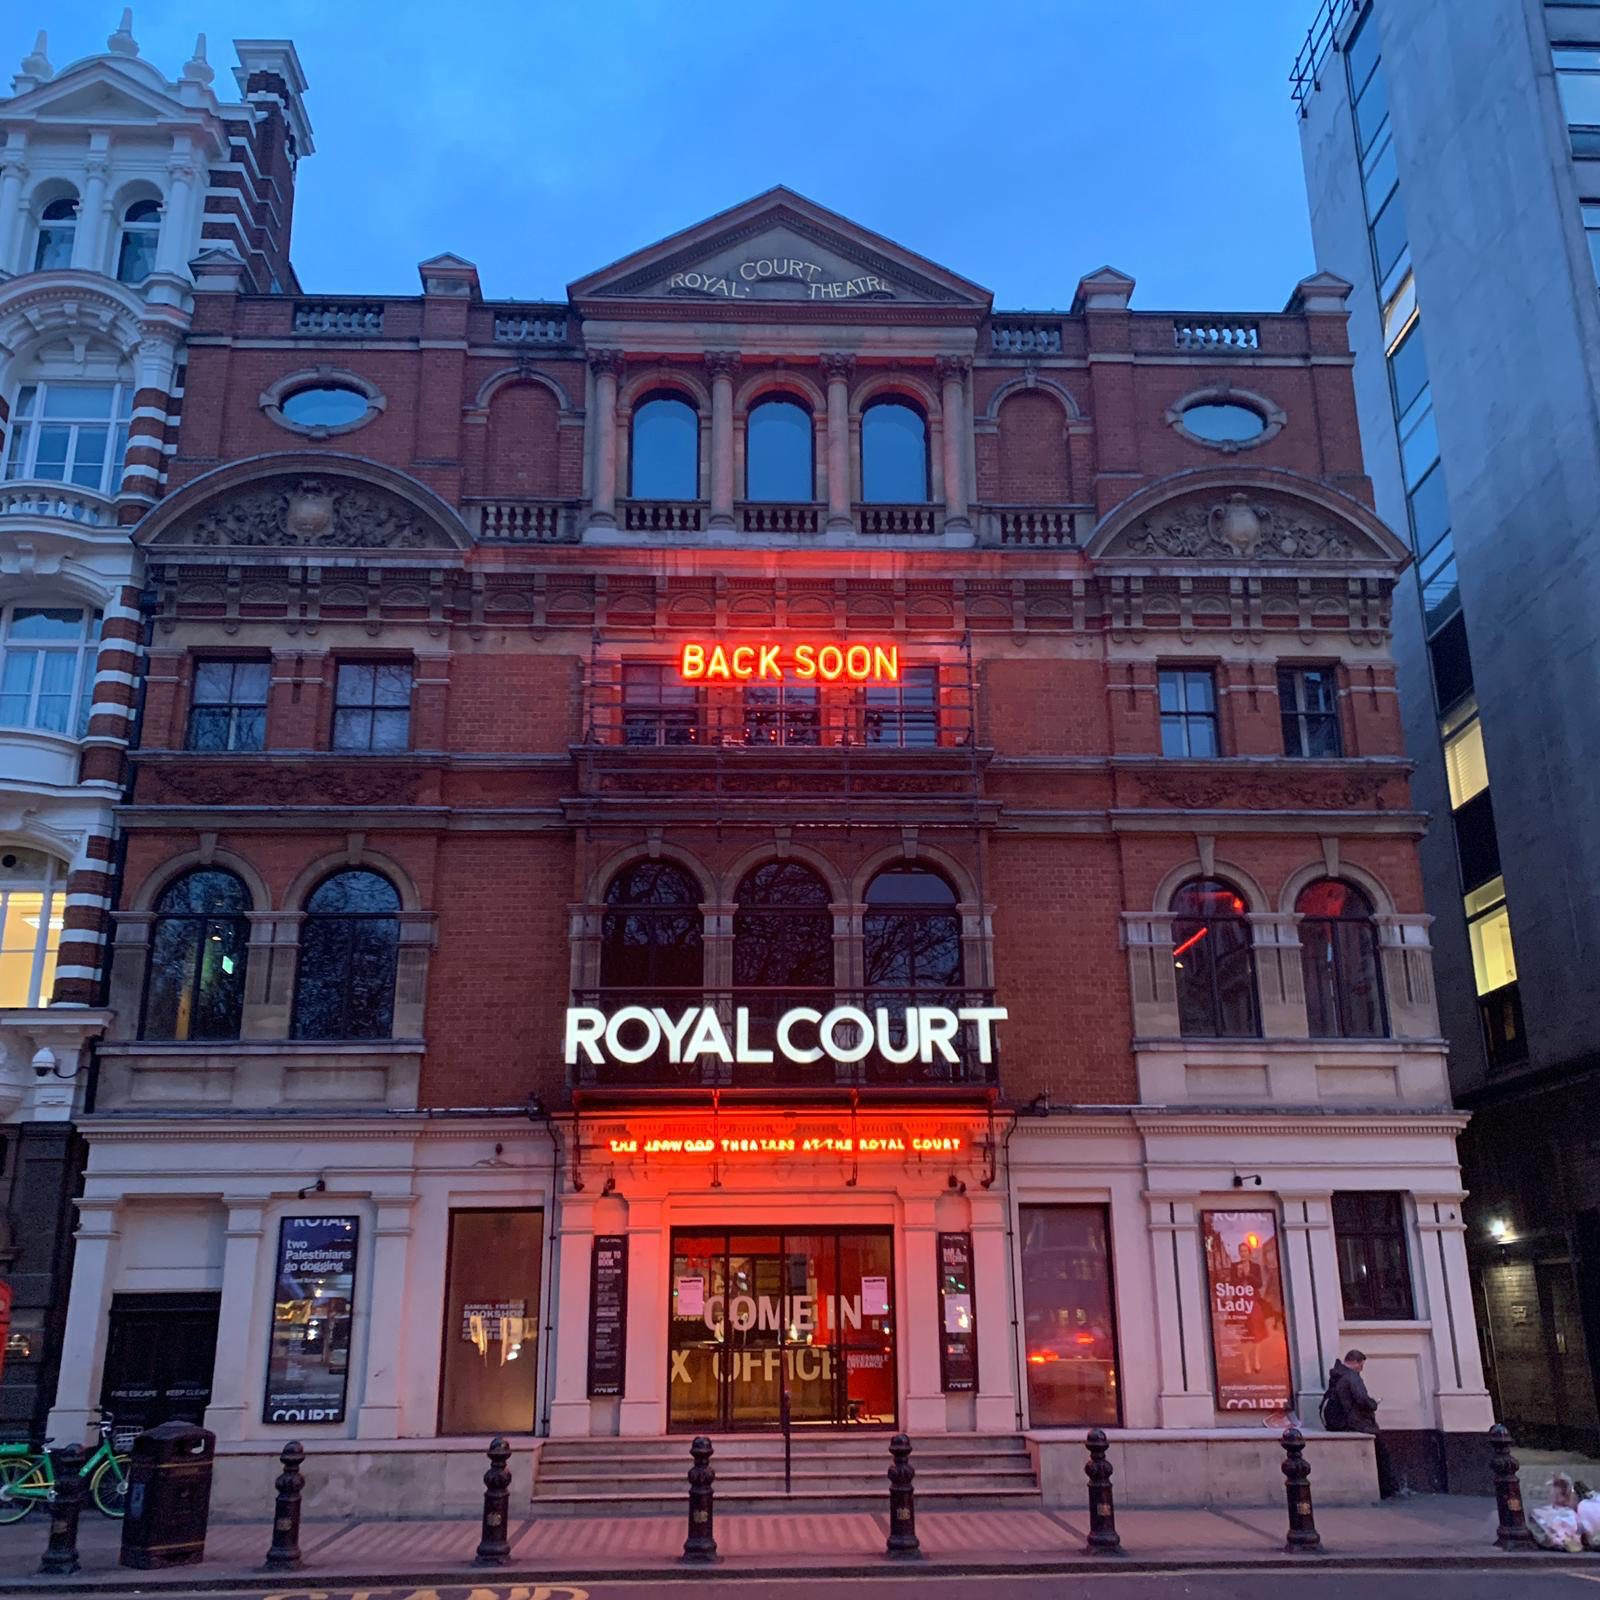 London's theatres have closed